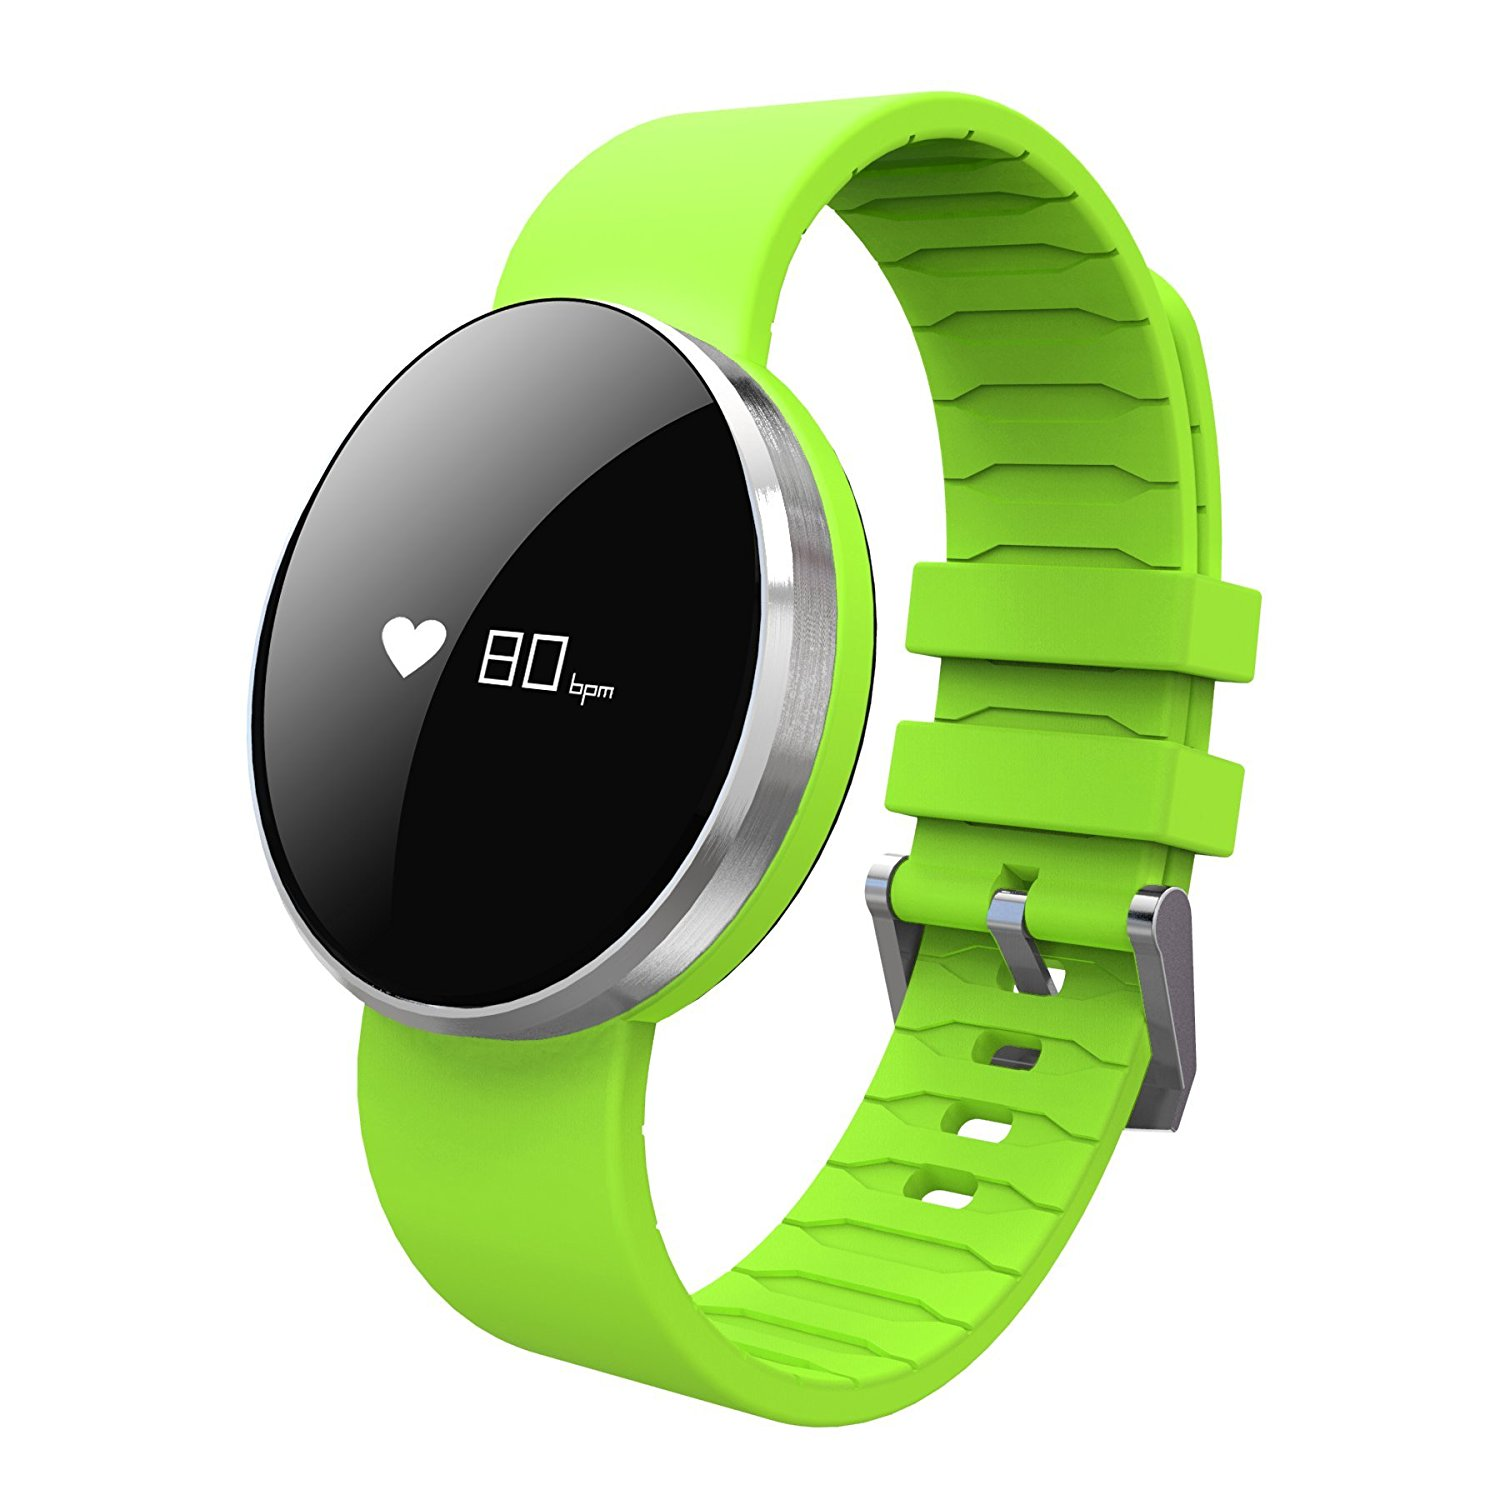 Smart Watches Calories Pedestrips Mileage Tracks Blood Pressure Heart Rate Real-Time Monitoring Fitness tracker Emergency Makeup Mirror IP67 Waterproof Sport Bracelet (green)